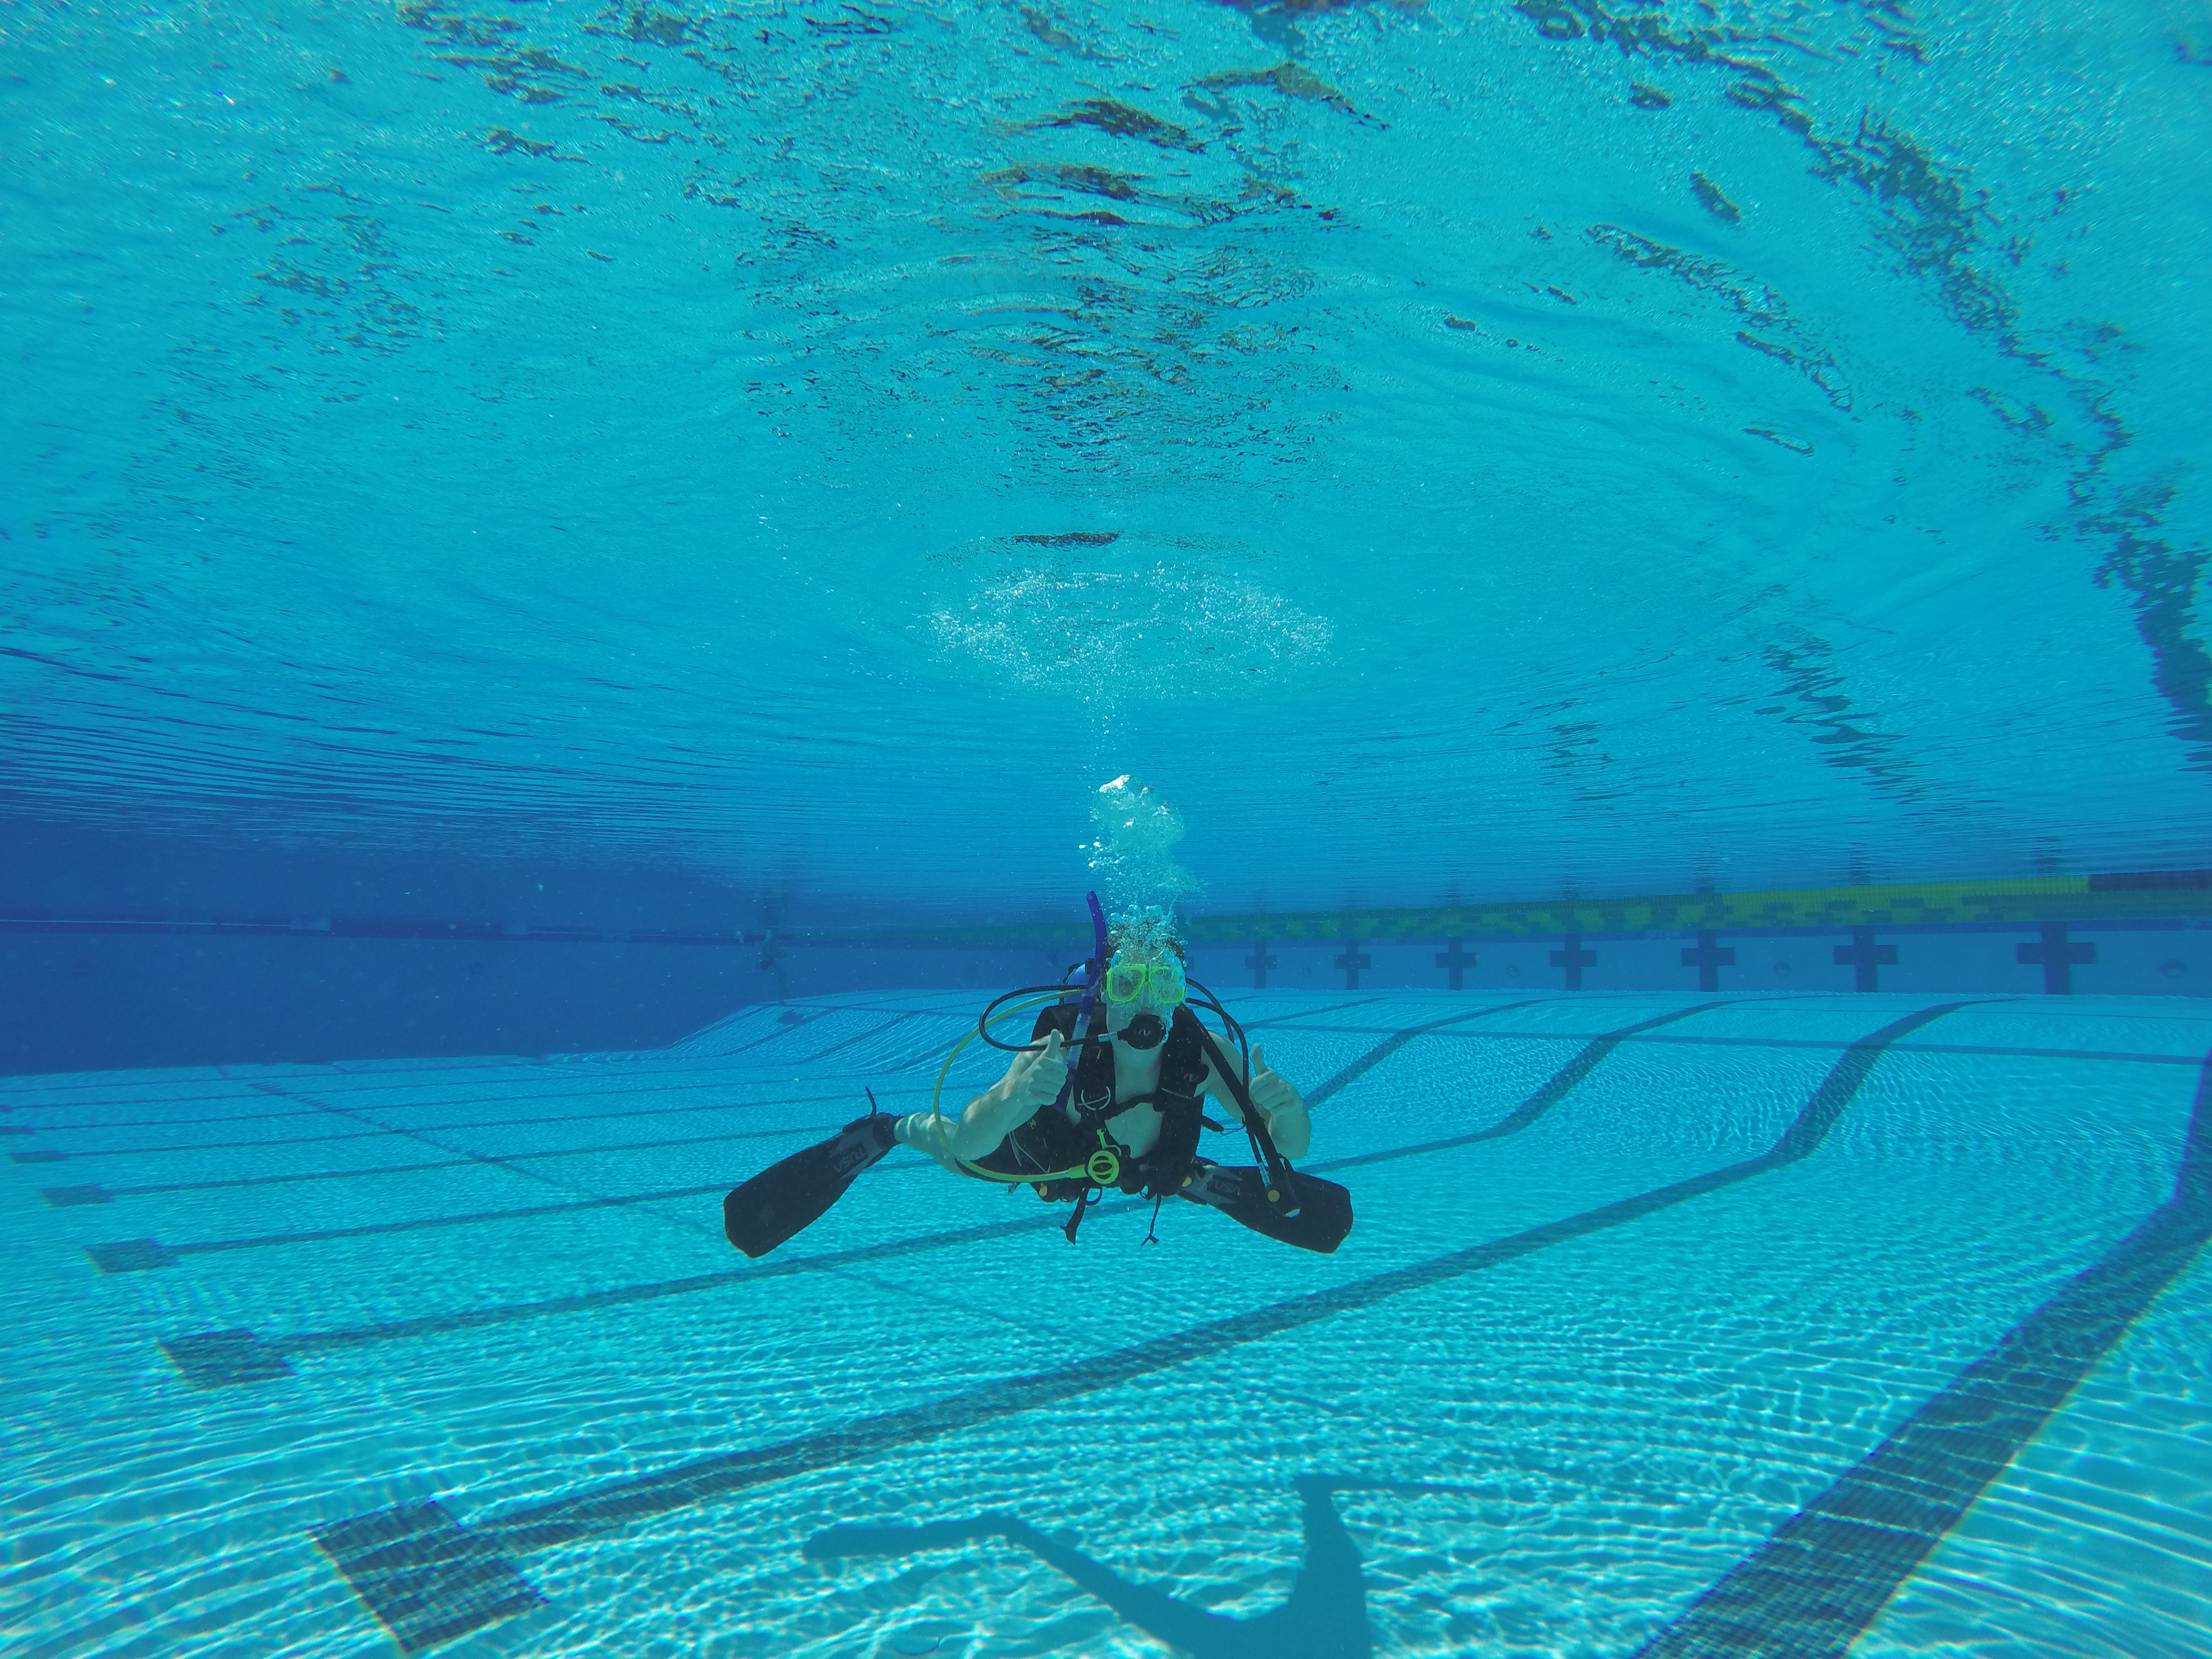 Bric Becomes Padi Certified The Campus Crop